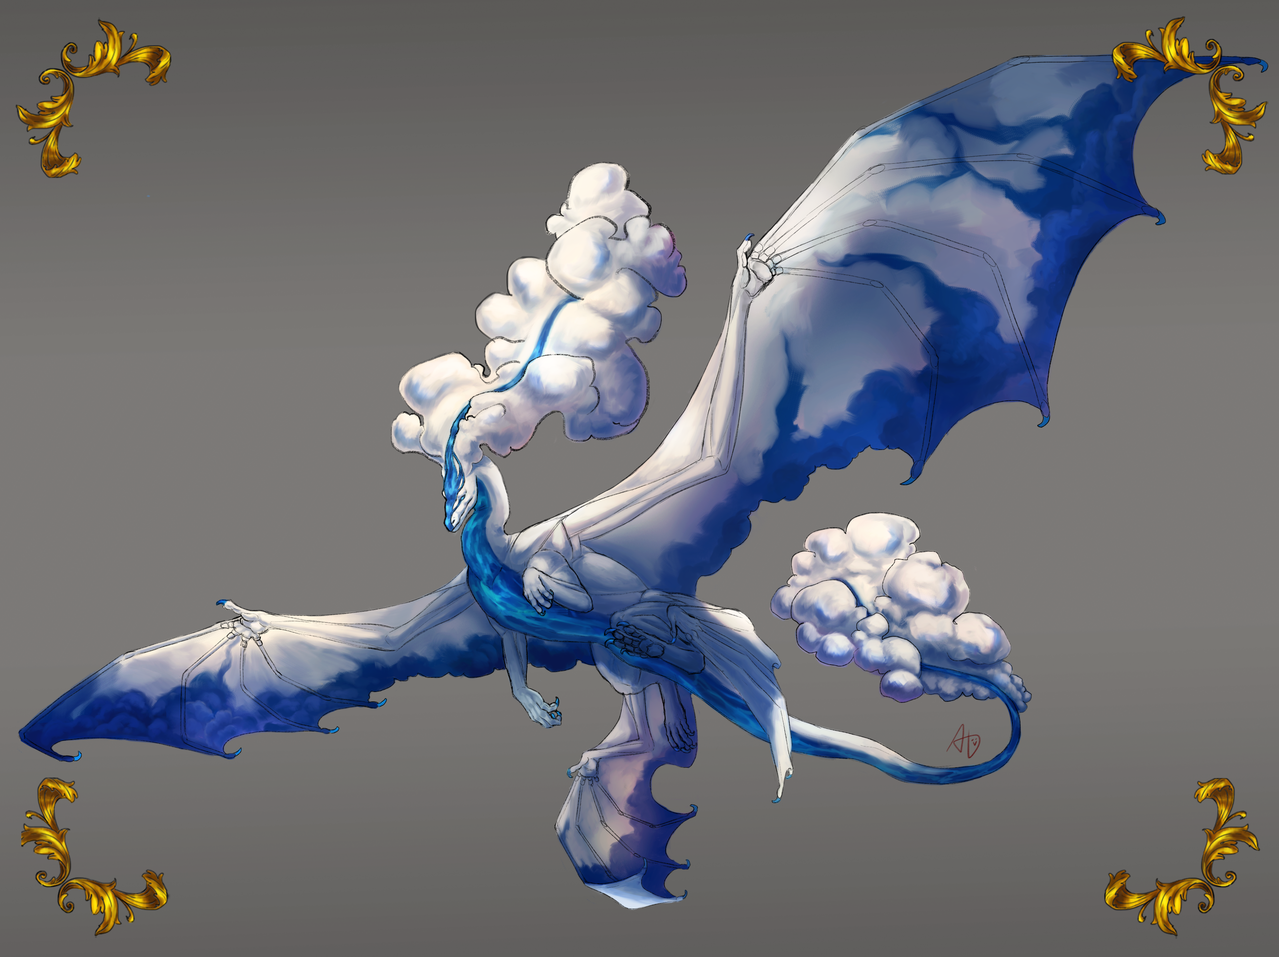 Dragon Design - River In The Clouds Illust of Revontulis fantasy January2021_Contest:OC dragon rivers characterdesign clouds digital illustration creature design